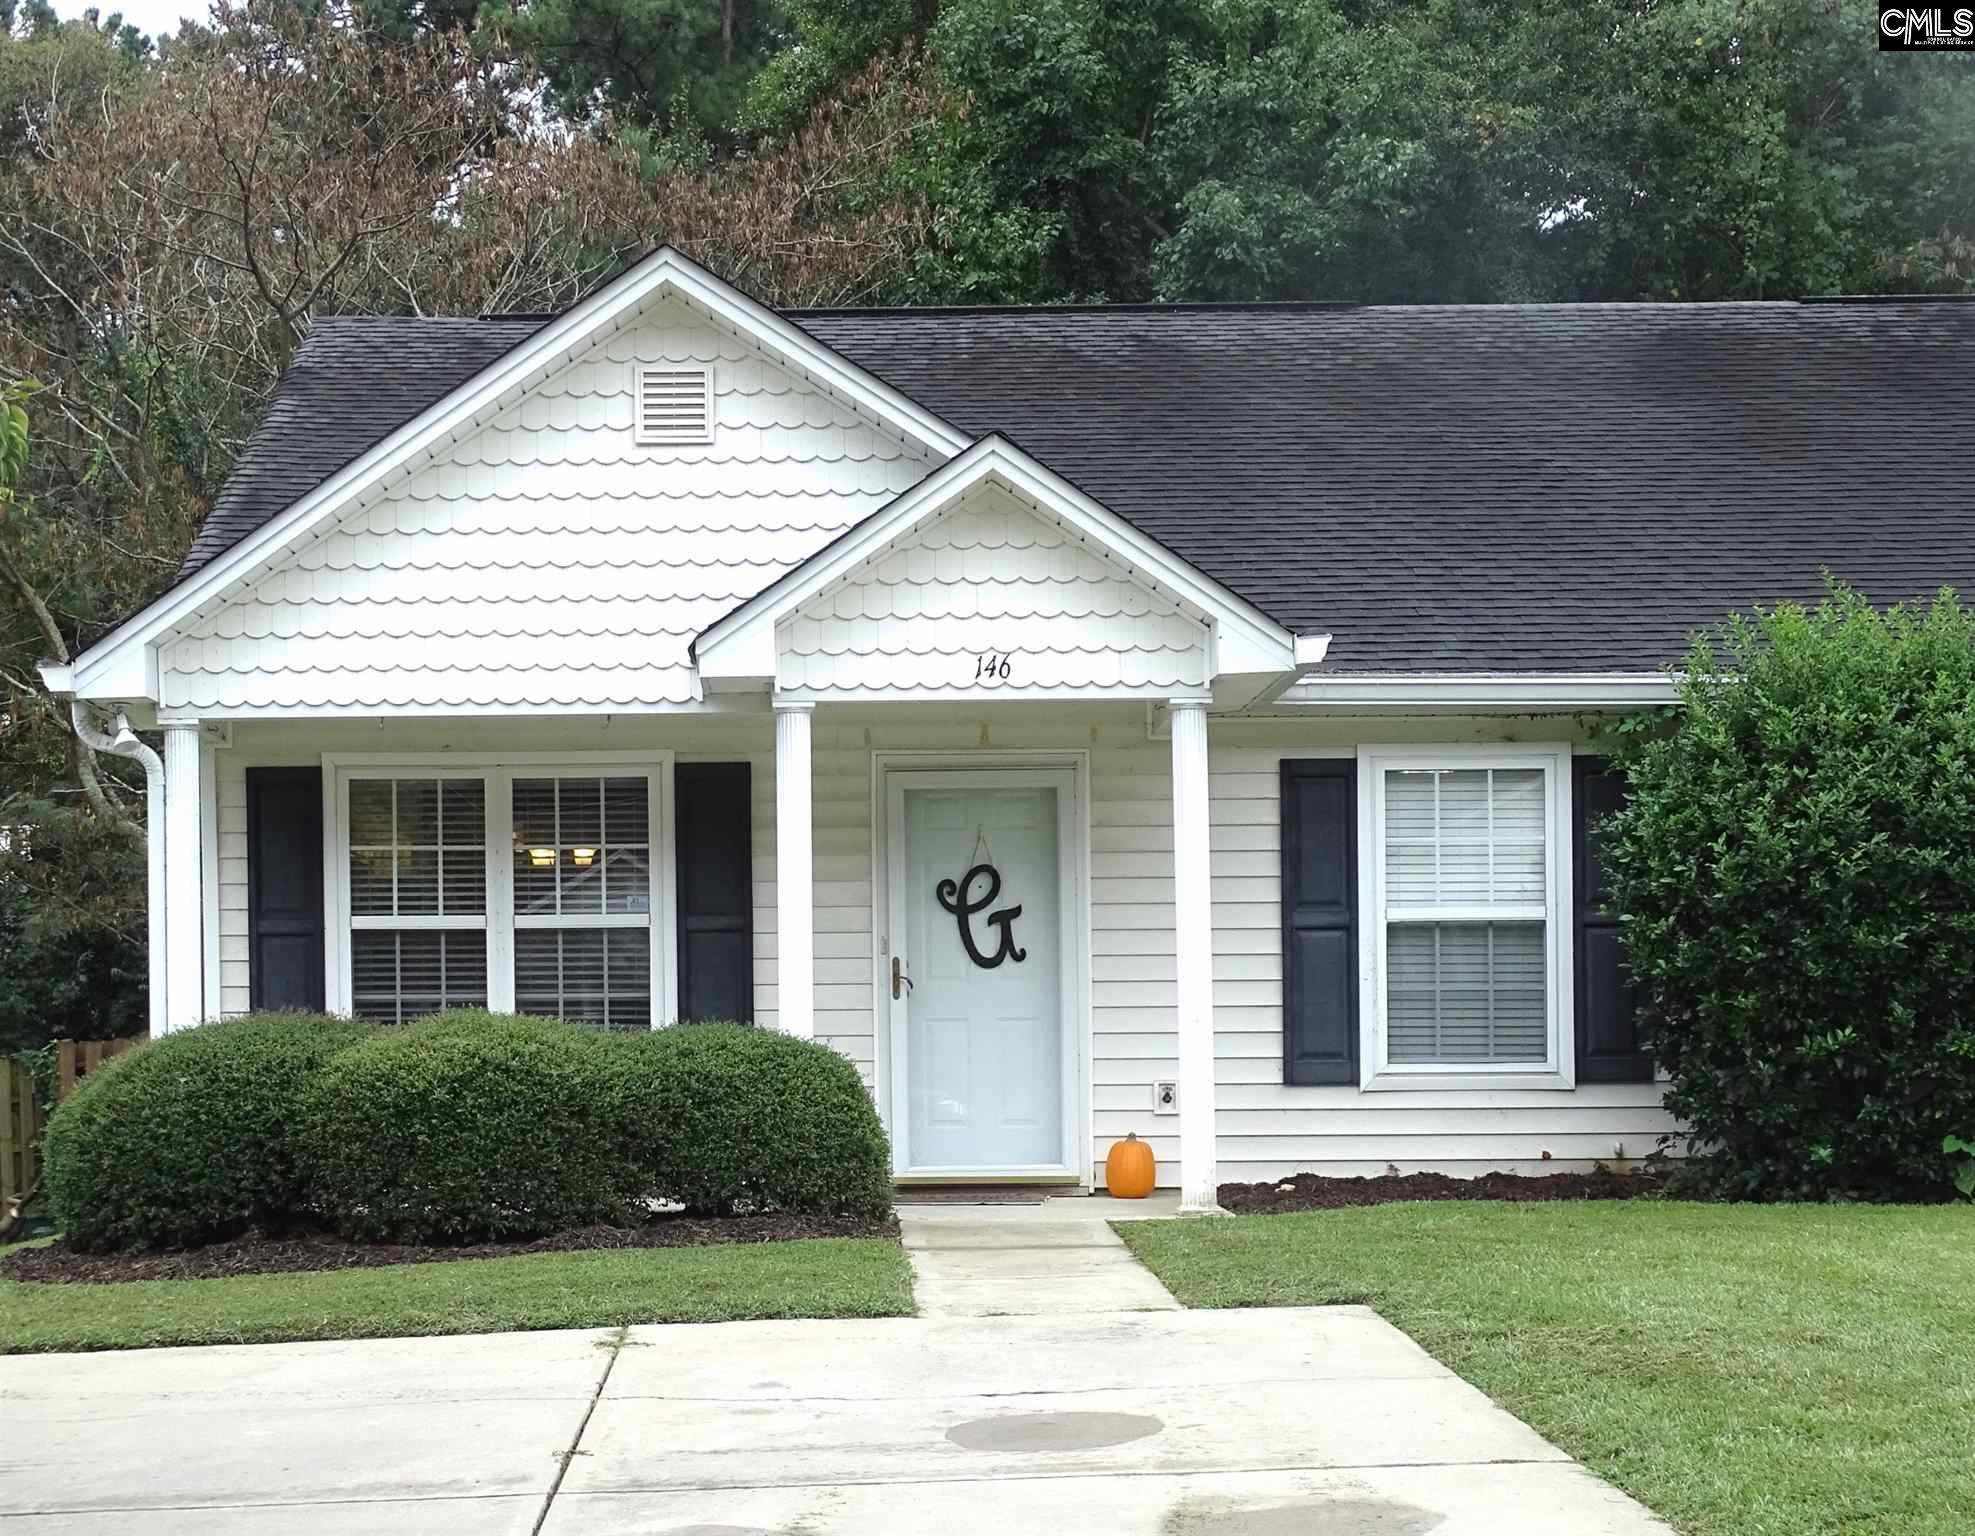 146 Palm Lexington, SC 29072